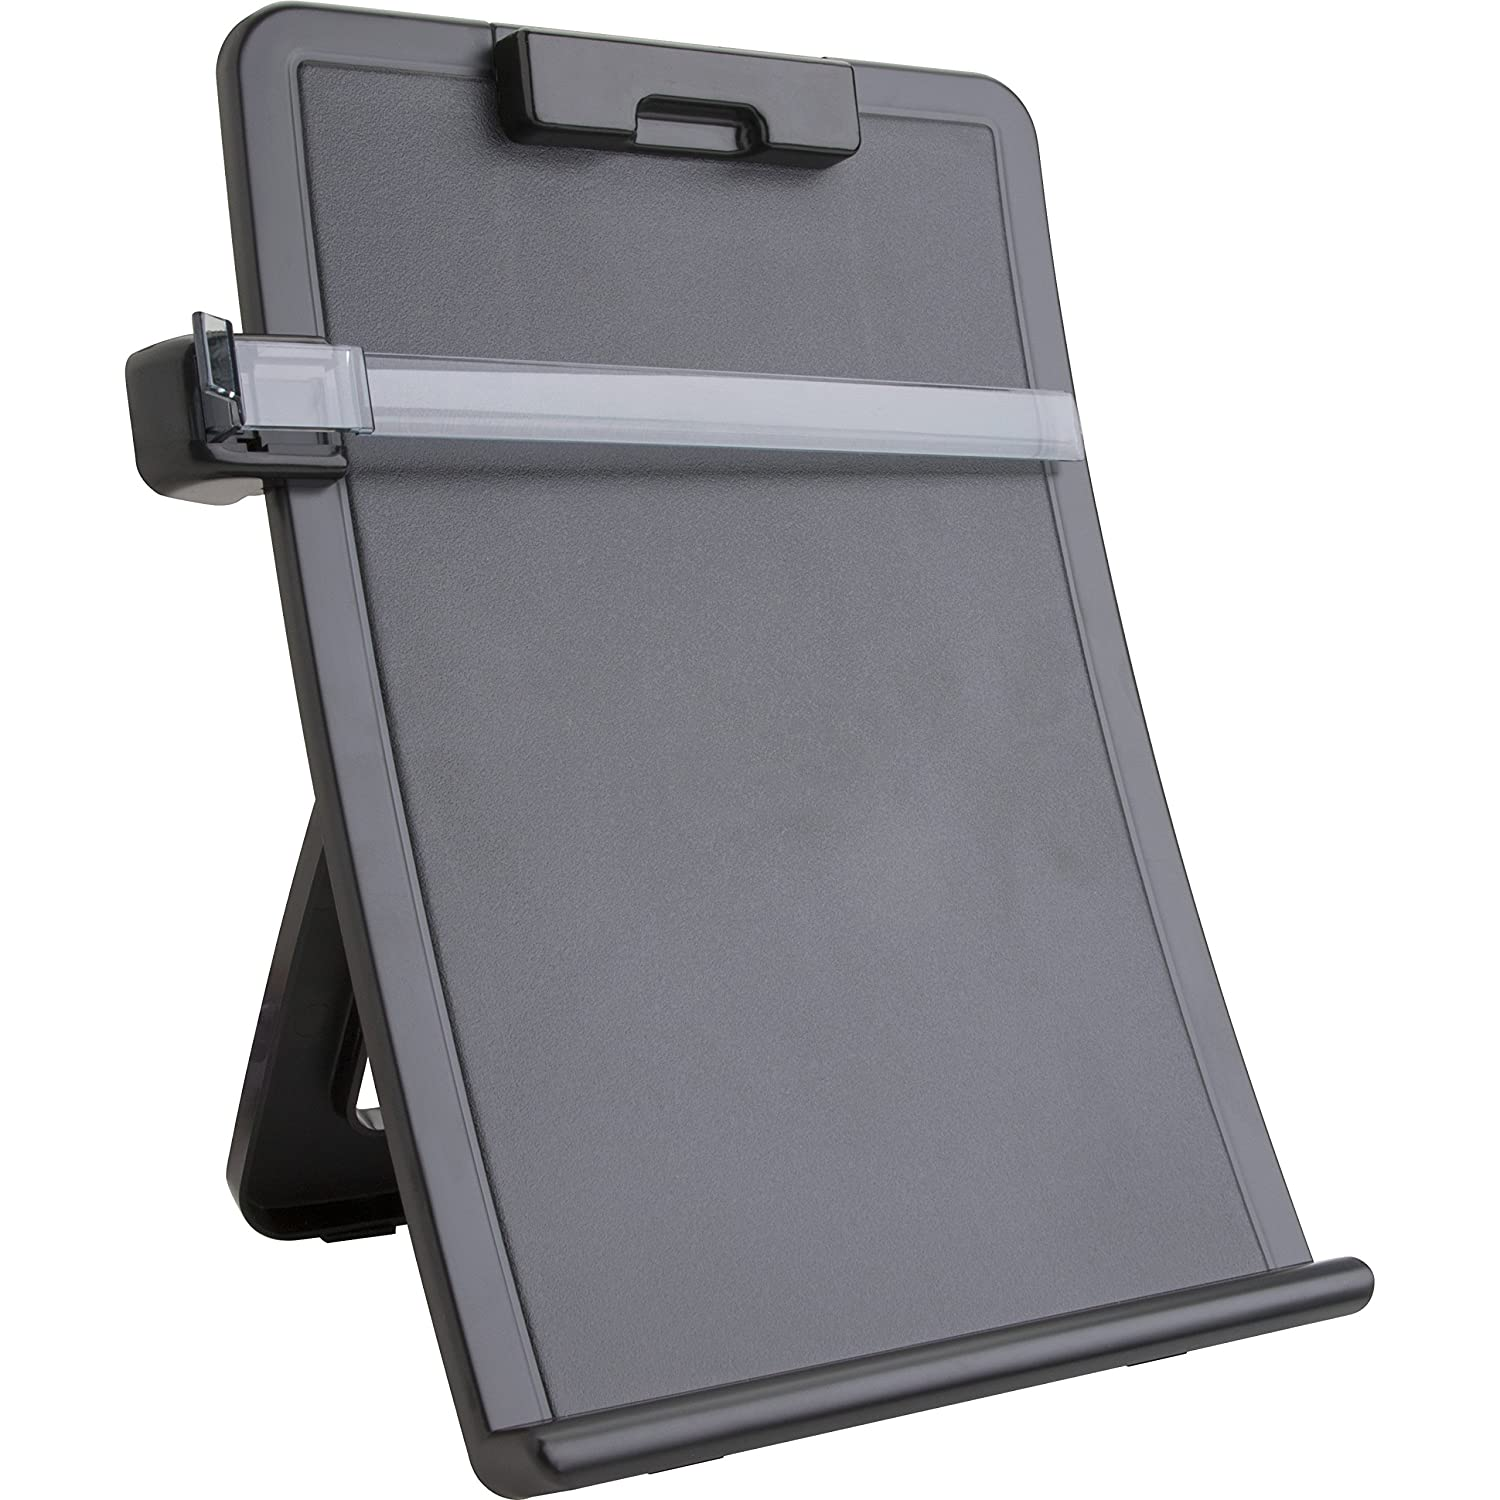 Sparco Easel Document Holders, Adjustable, 10 x 2-1/2 x 14-3/8 Inches, Black (SPR38951)